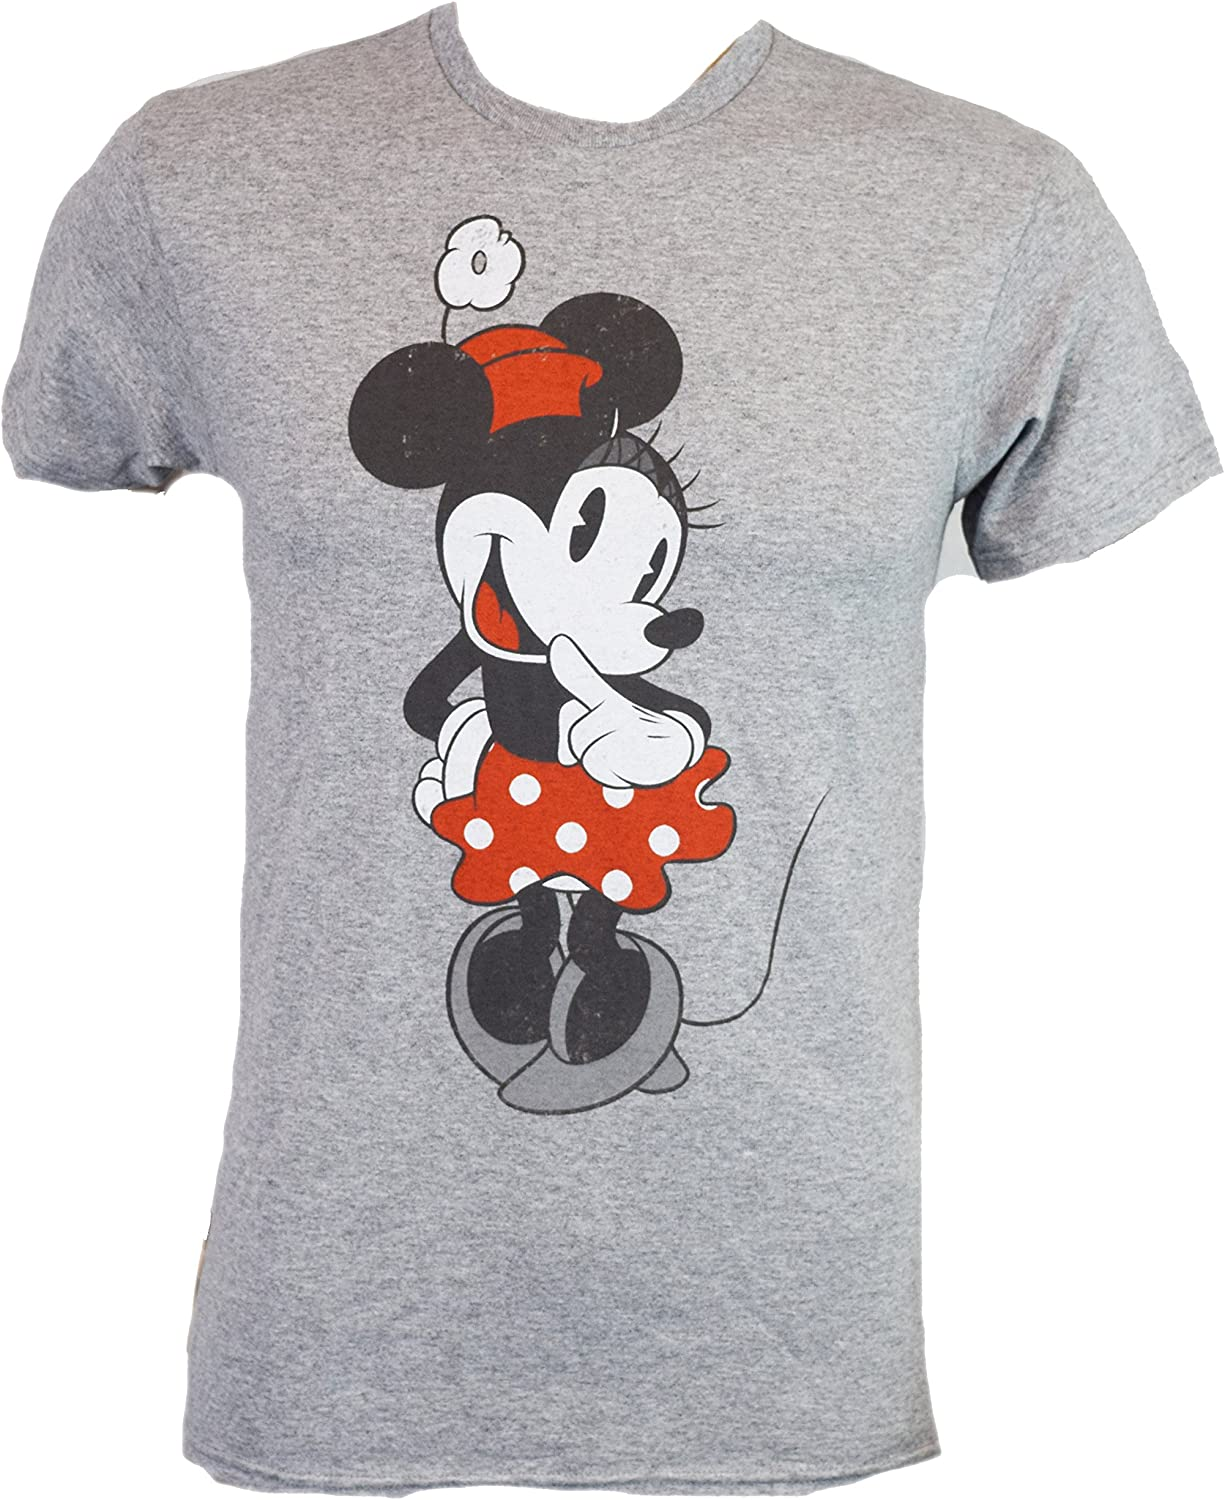 Disney Shy Minnie Mouse Graphic Tee Classic Vintage Disneyland World Adult Tee Graphic T-Shirt for Men Tshirt Clothes Apparel